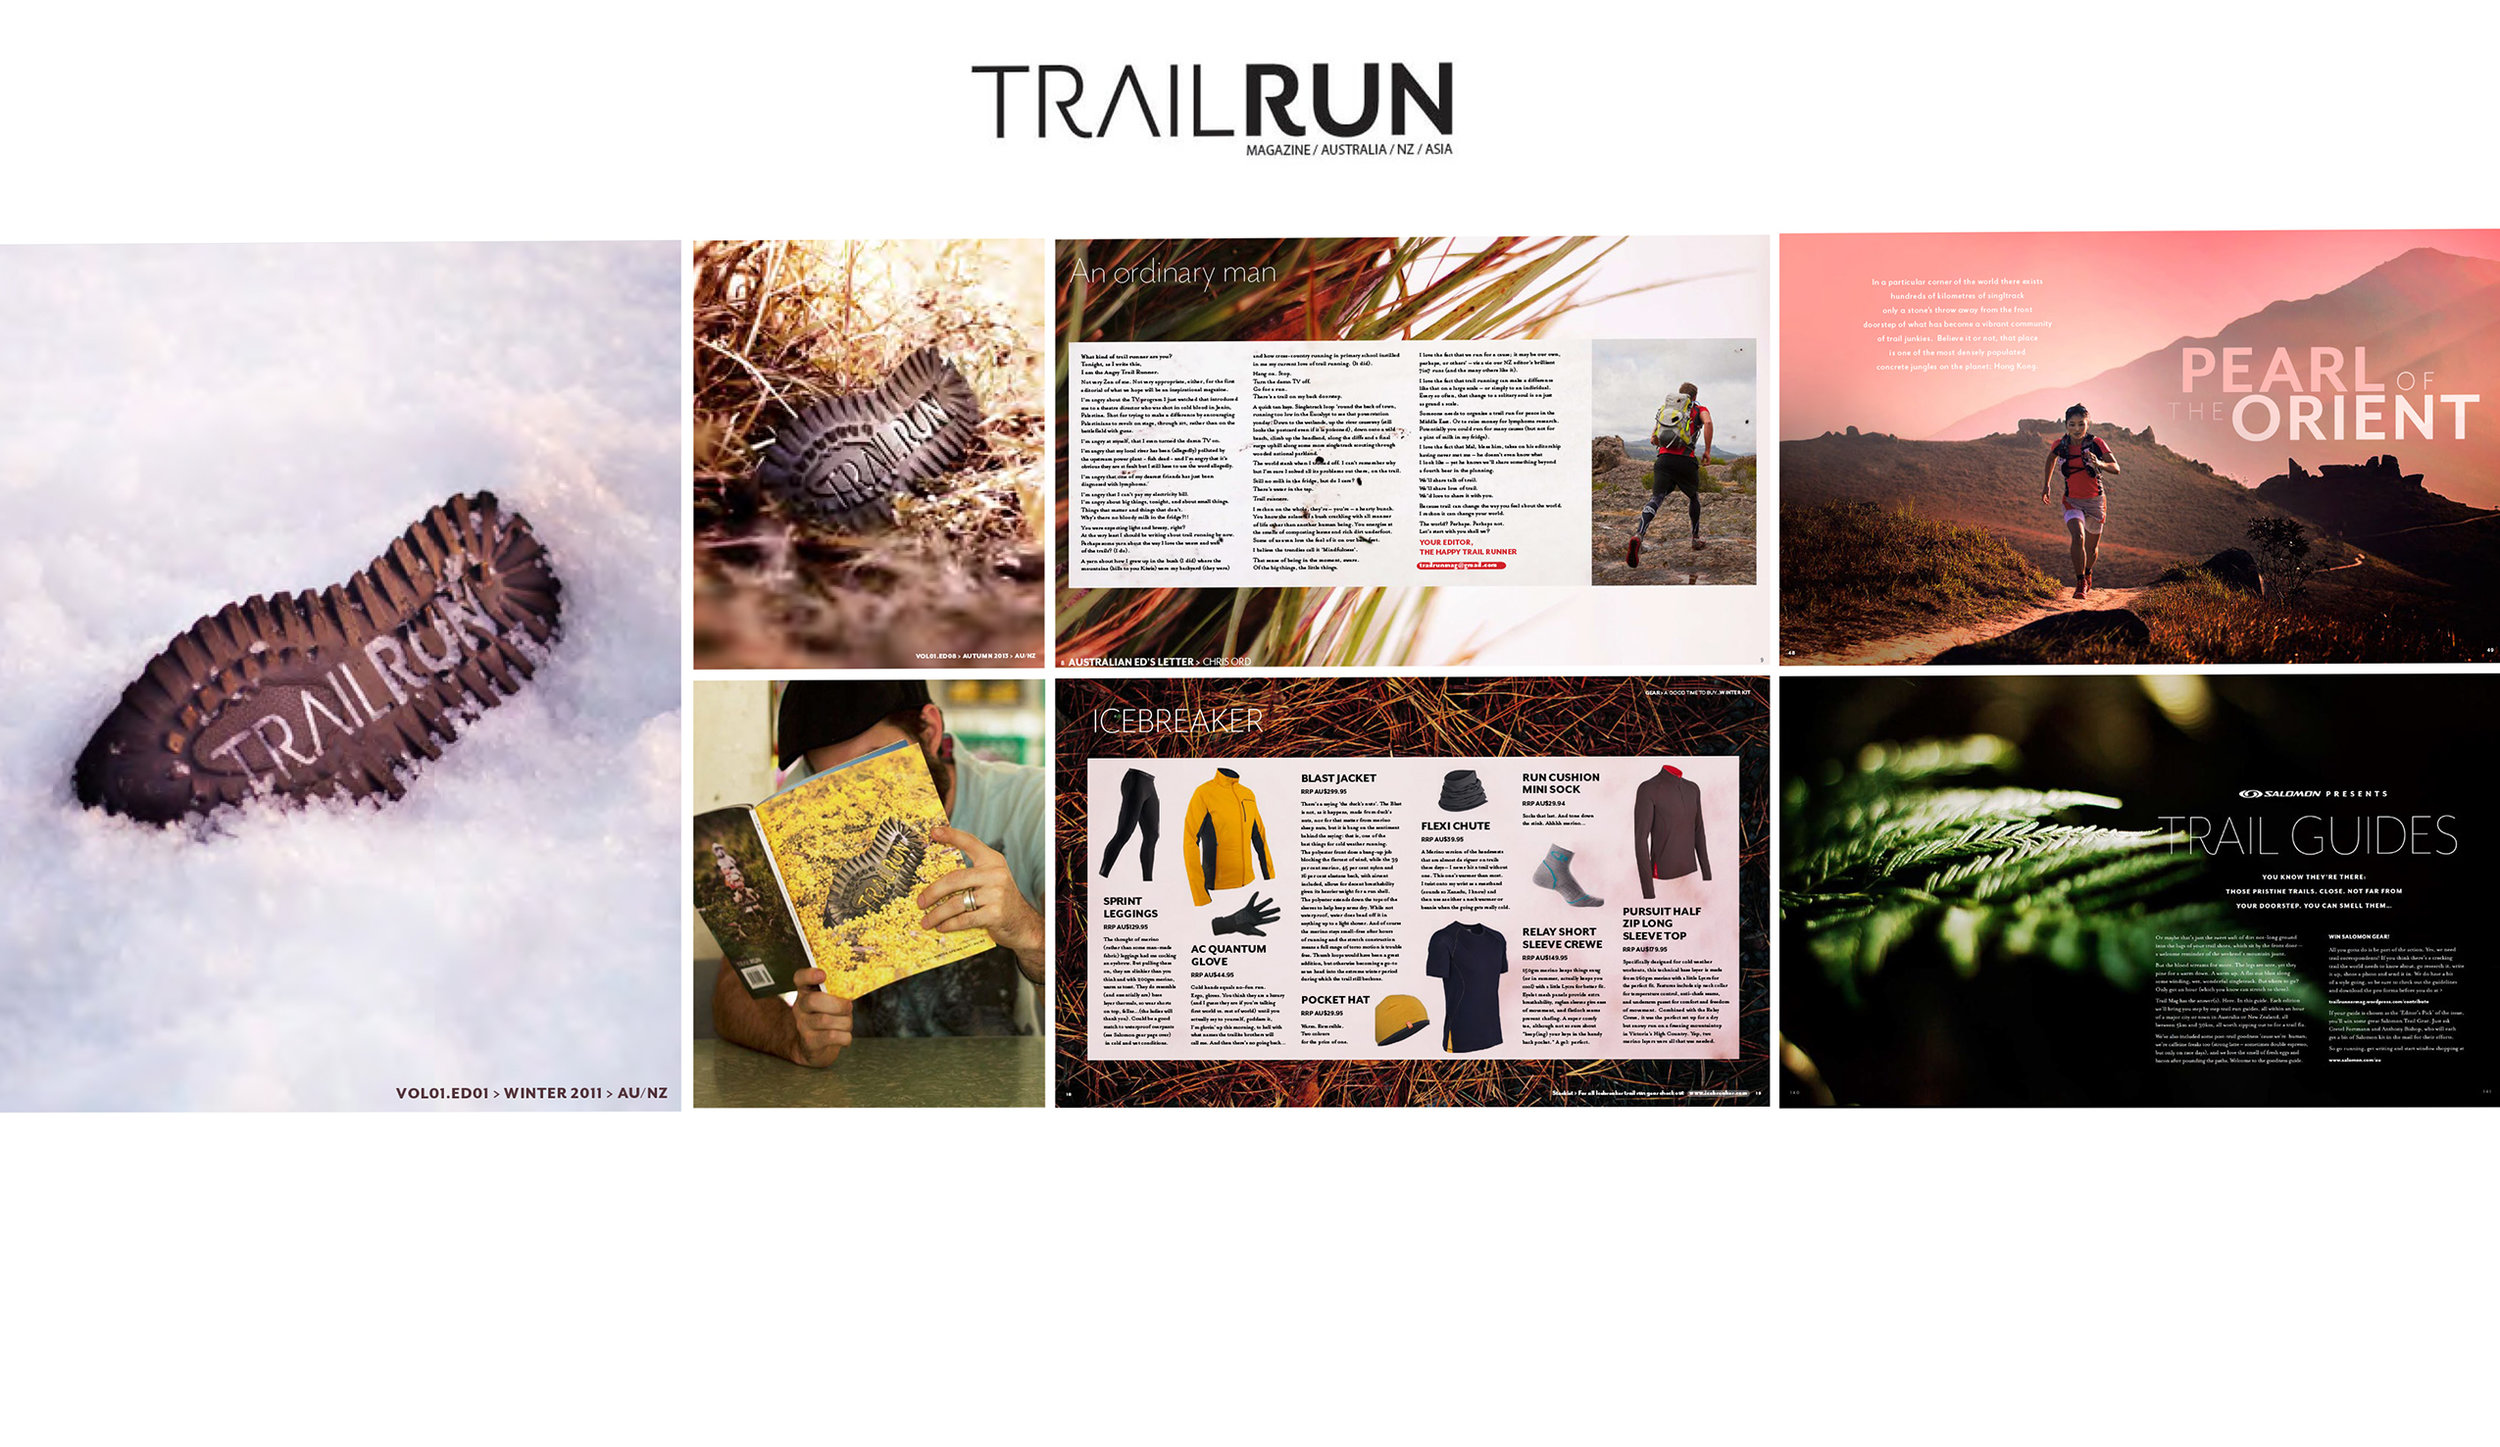 TRAIL RUN    120 page magazine design, style guide, branding for 2 years   Art Direction and Photography by Heidi Green